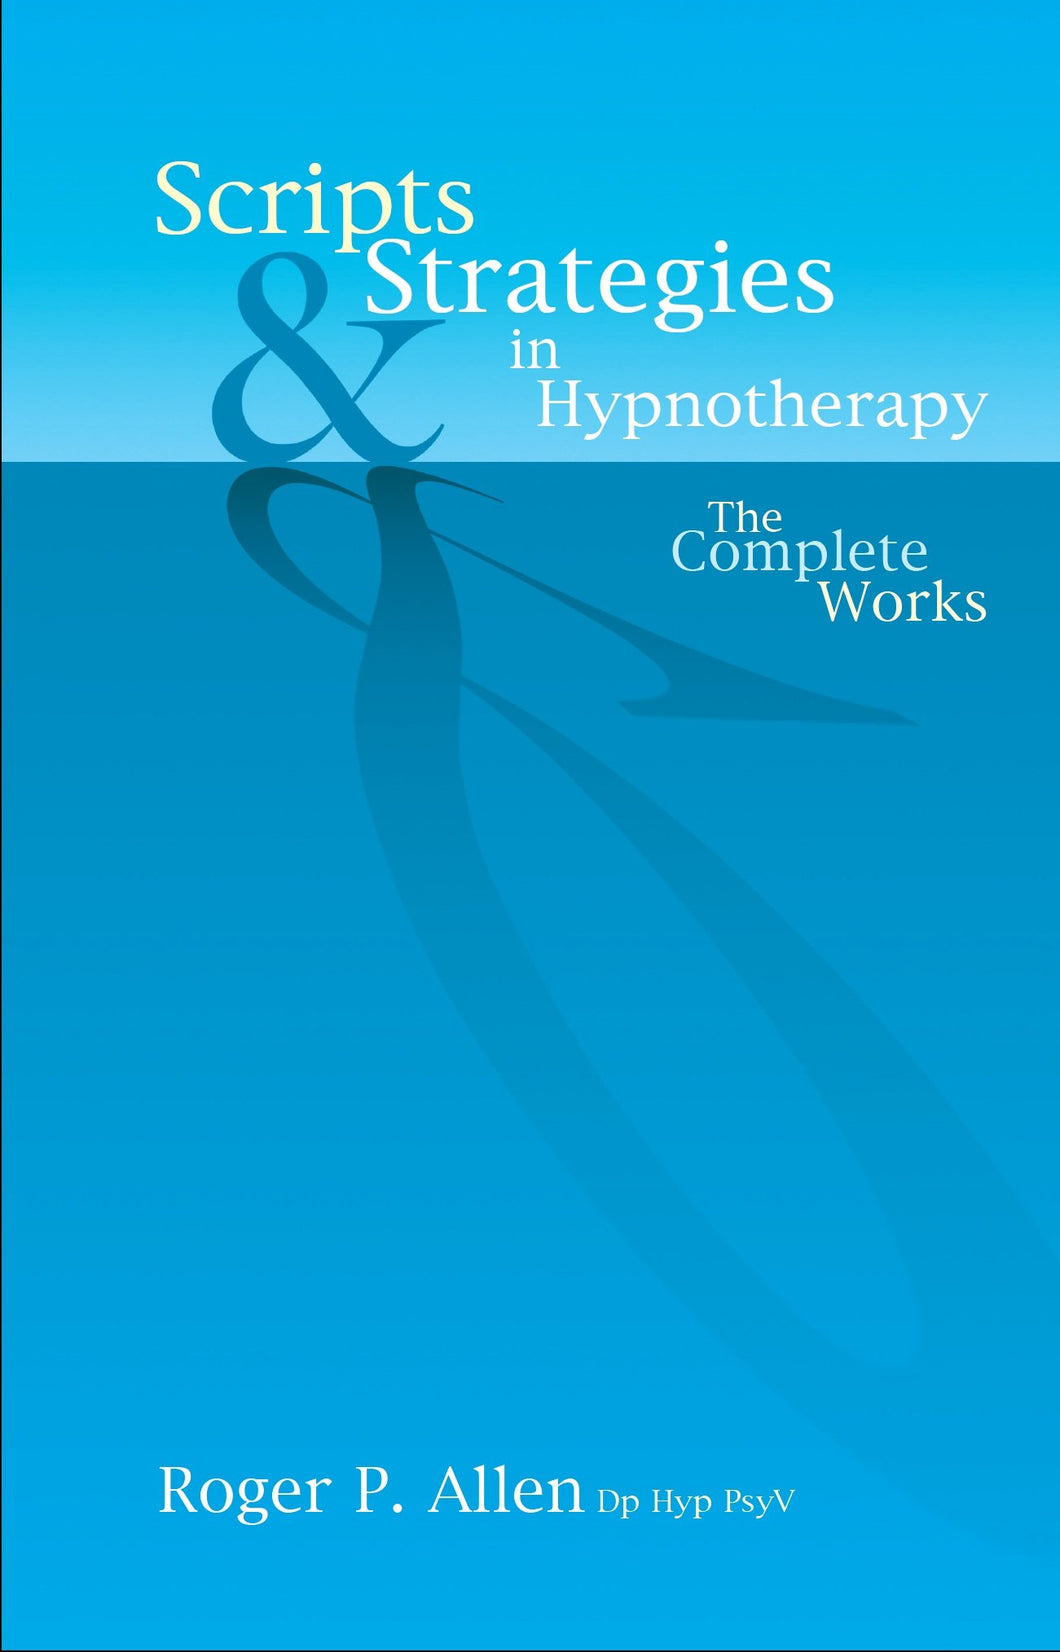 Scripts & Strategies in Hypnotherapy: The Complete Works